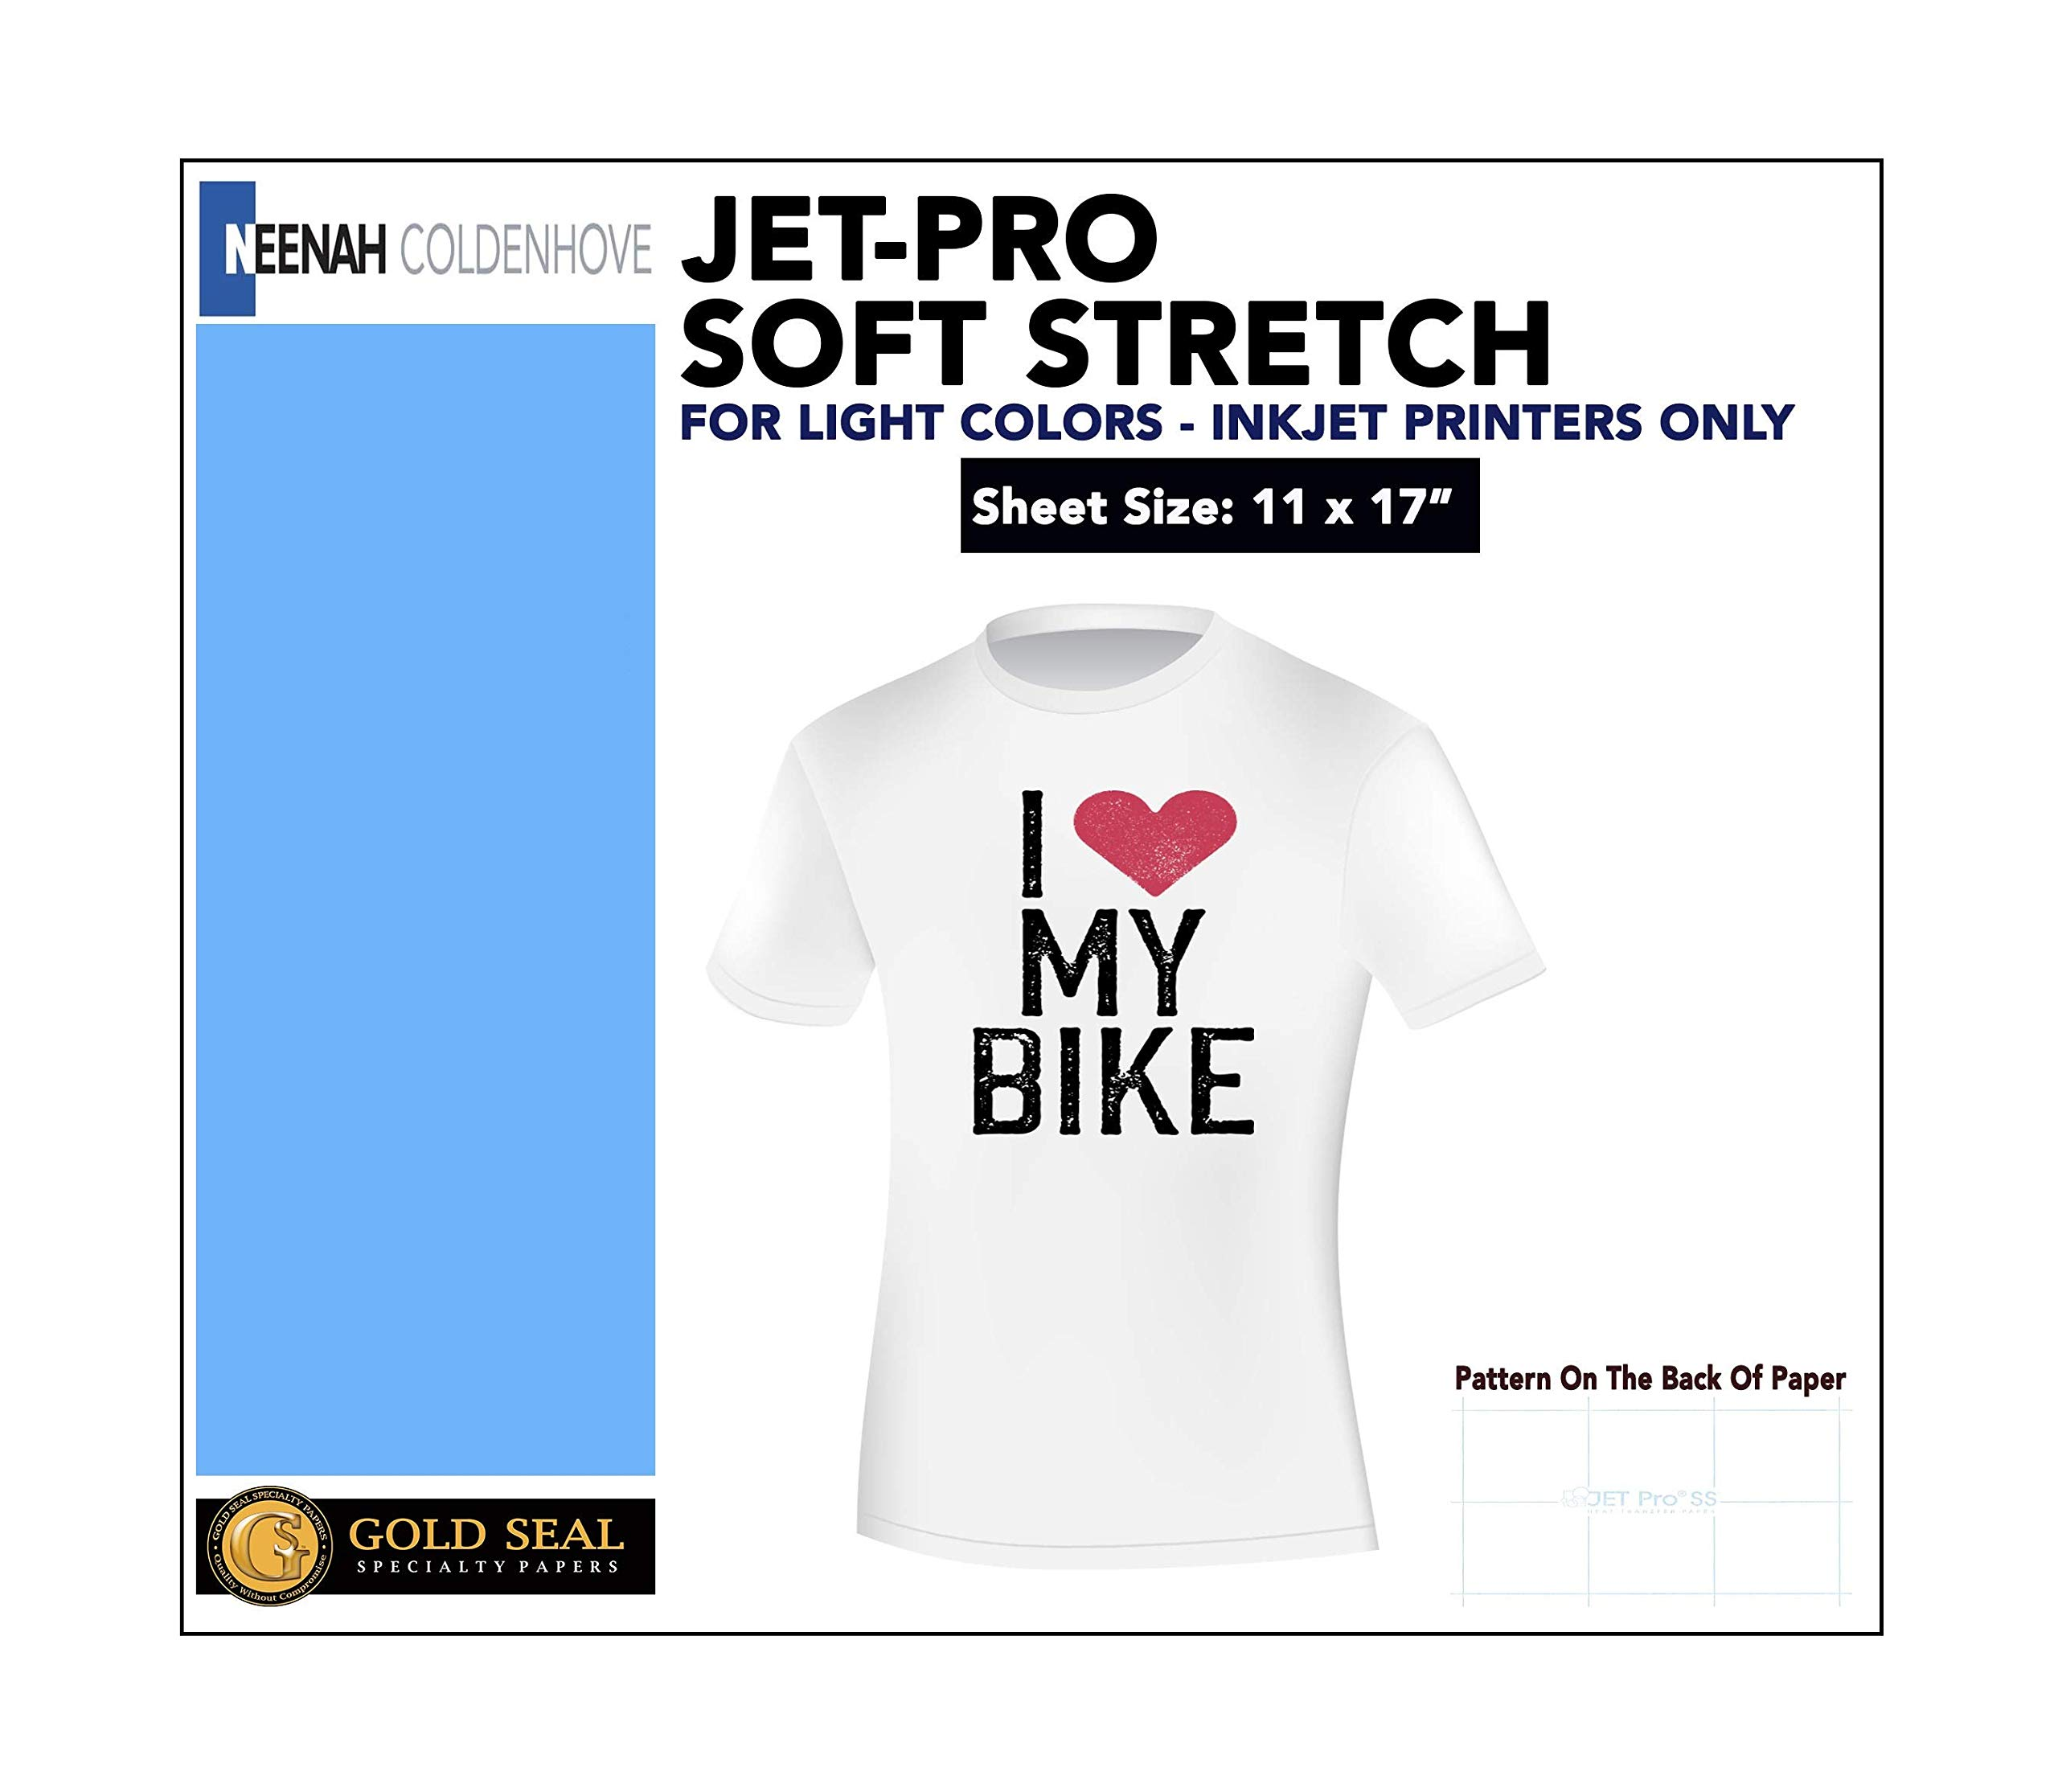 IRON ON HEAT TRANSFER PAPER JET-PRO SS SOFSTRETCH 11 x 17'' CUSTOM PACK 100 SHEETS by Neenah